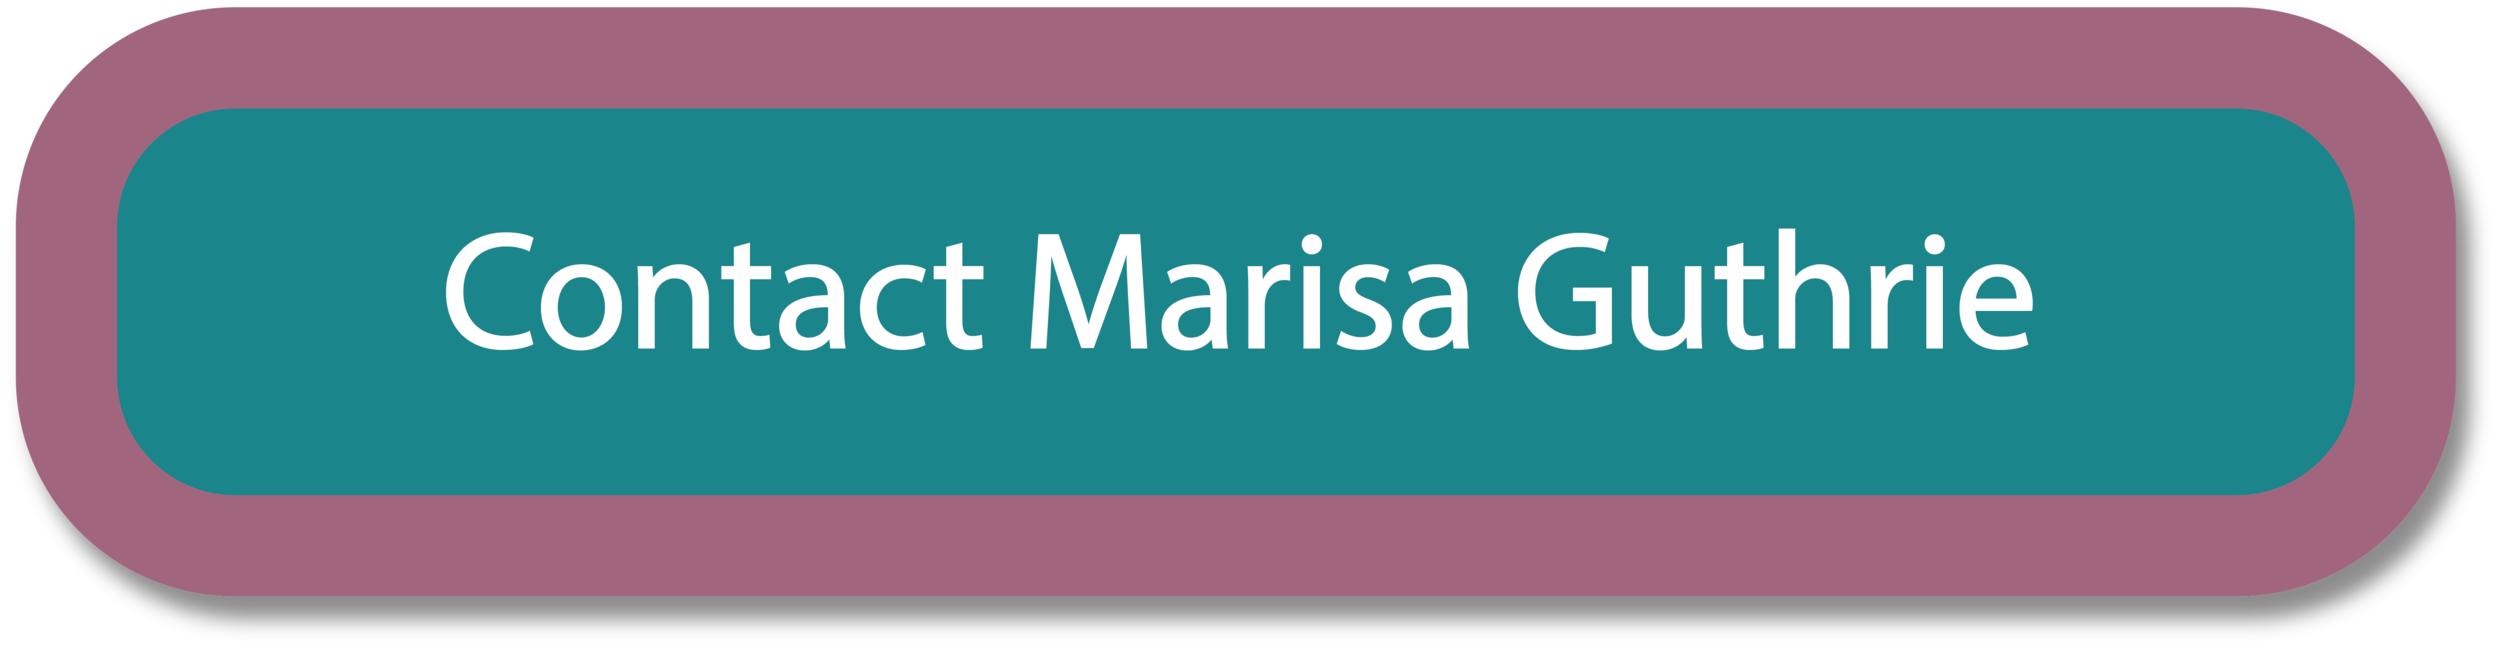 Contact Marisa Guthrie on Business Coach Sussex Website by 100Designs